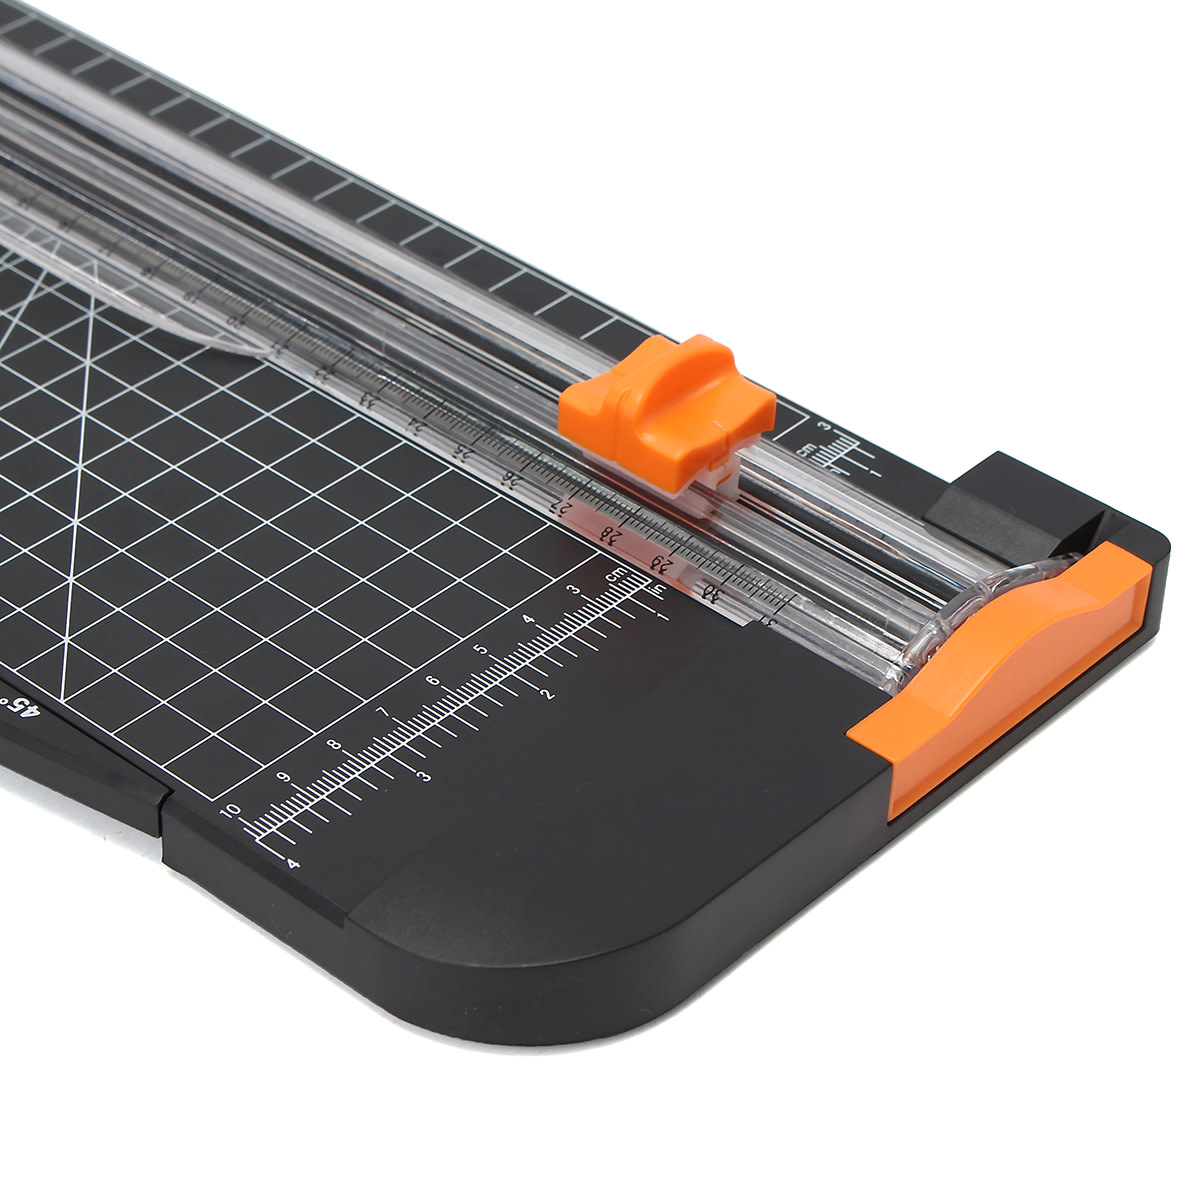 Measure your photo with a ruler. Then decide how big and how many mats that you want for your photo. Use your paper cutter to cut your mats to the exact measurements for your needs.